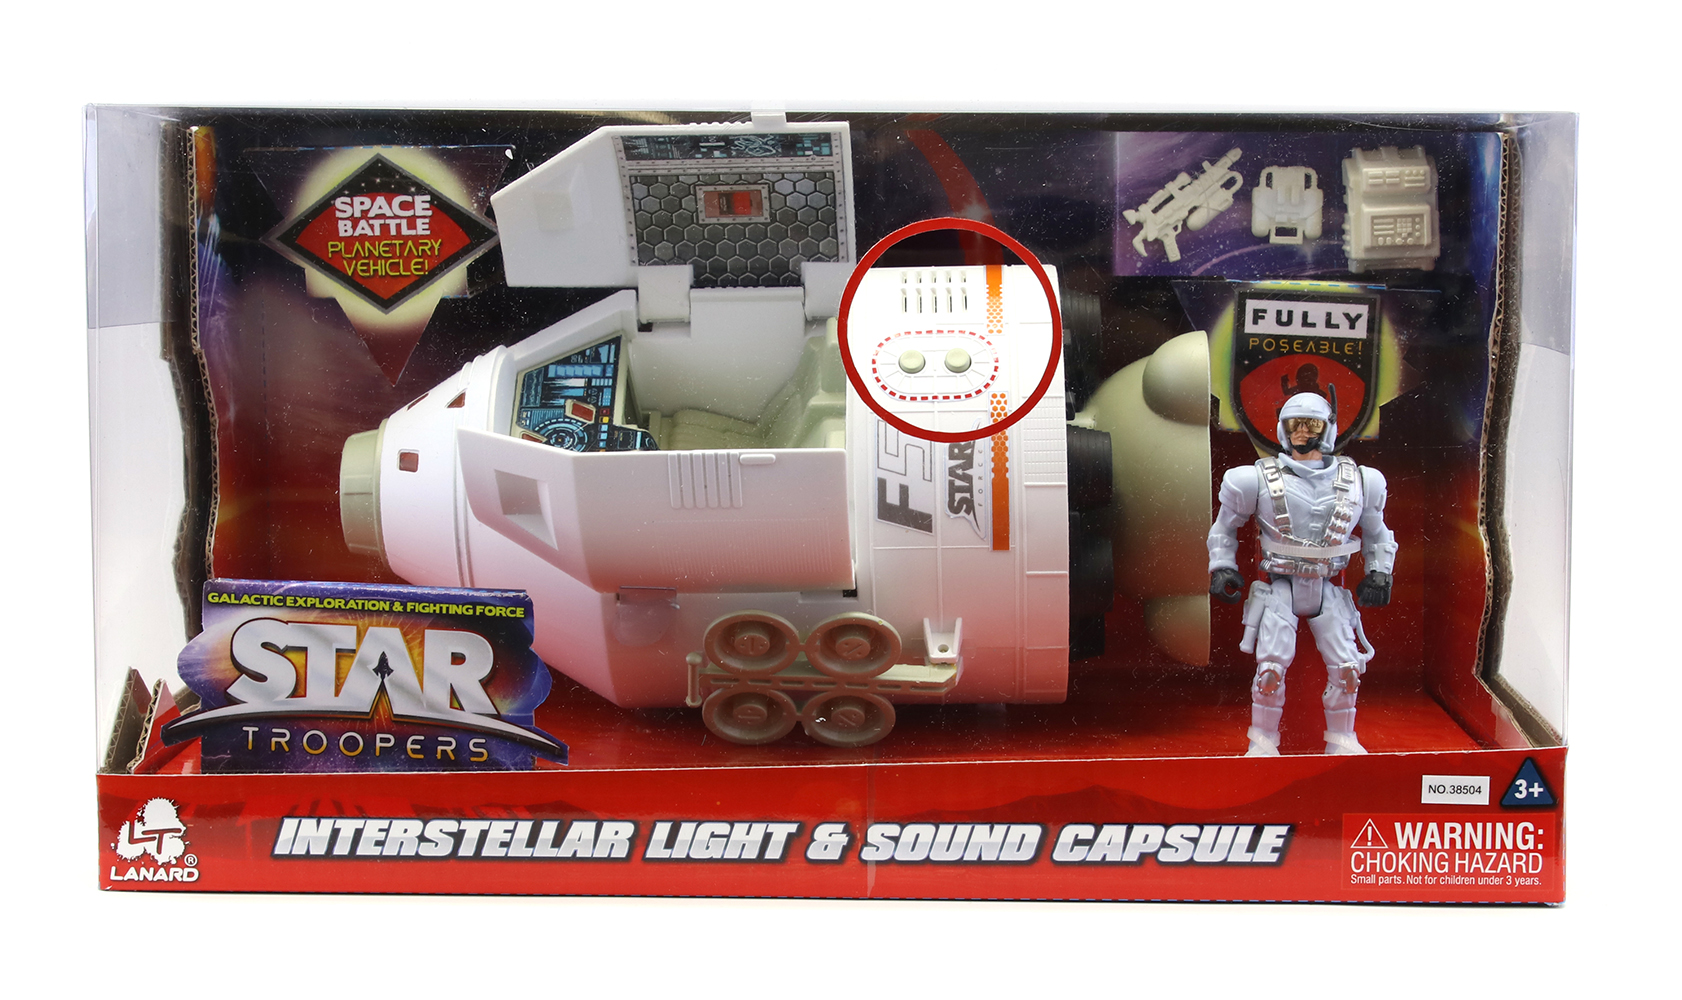 Star Troopers - Interstellar Capsule Light and sound